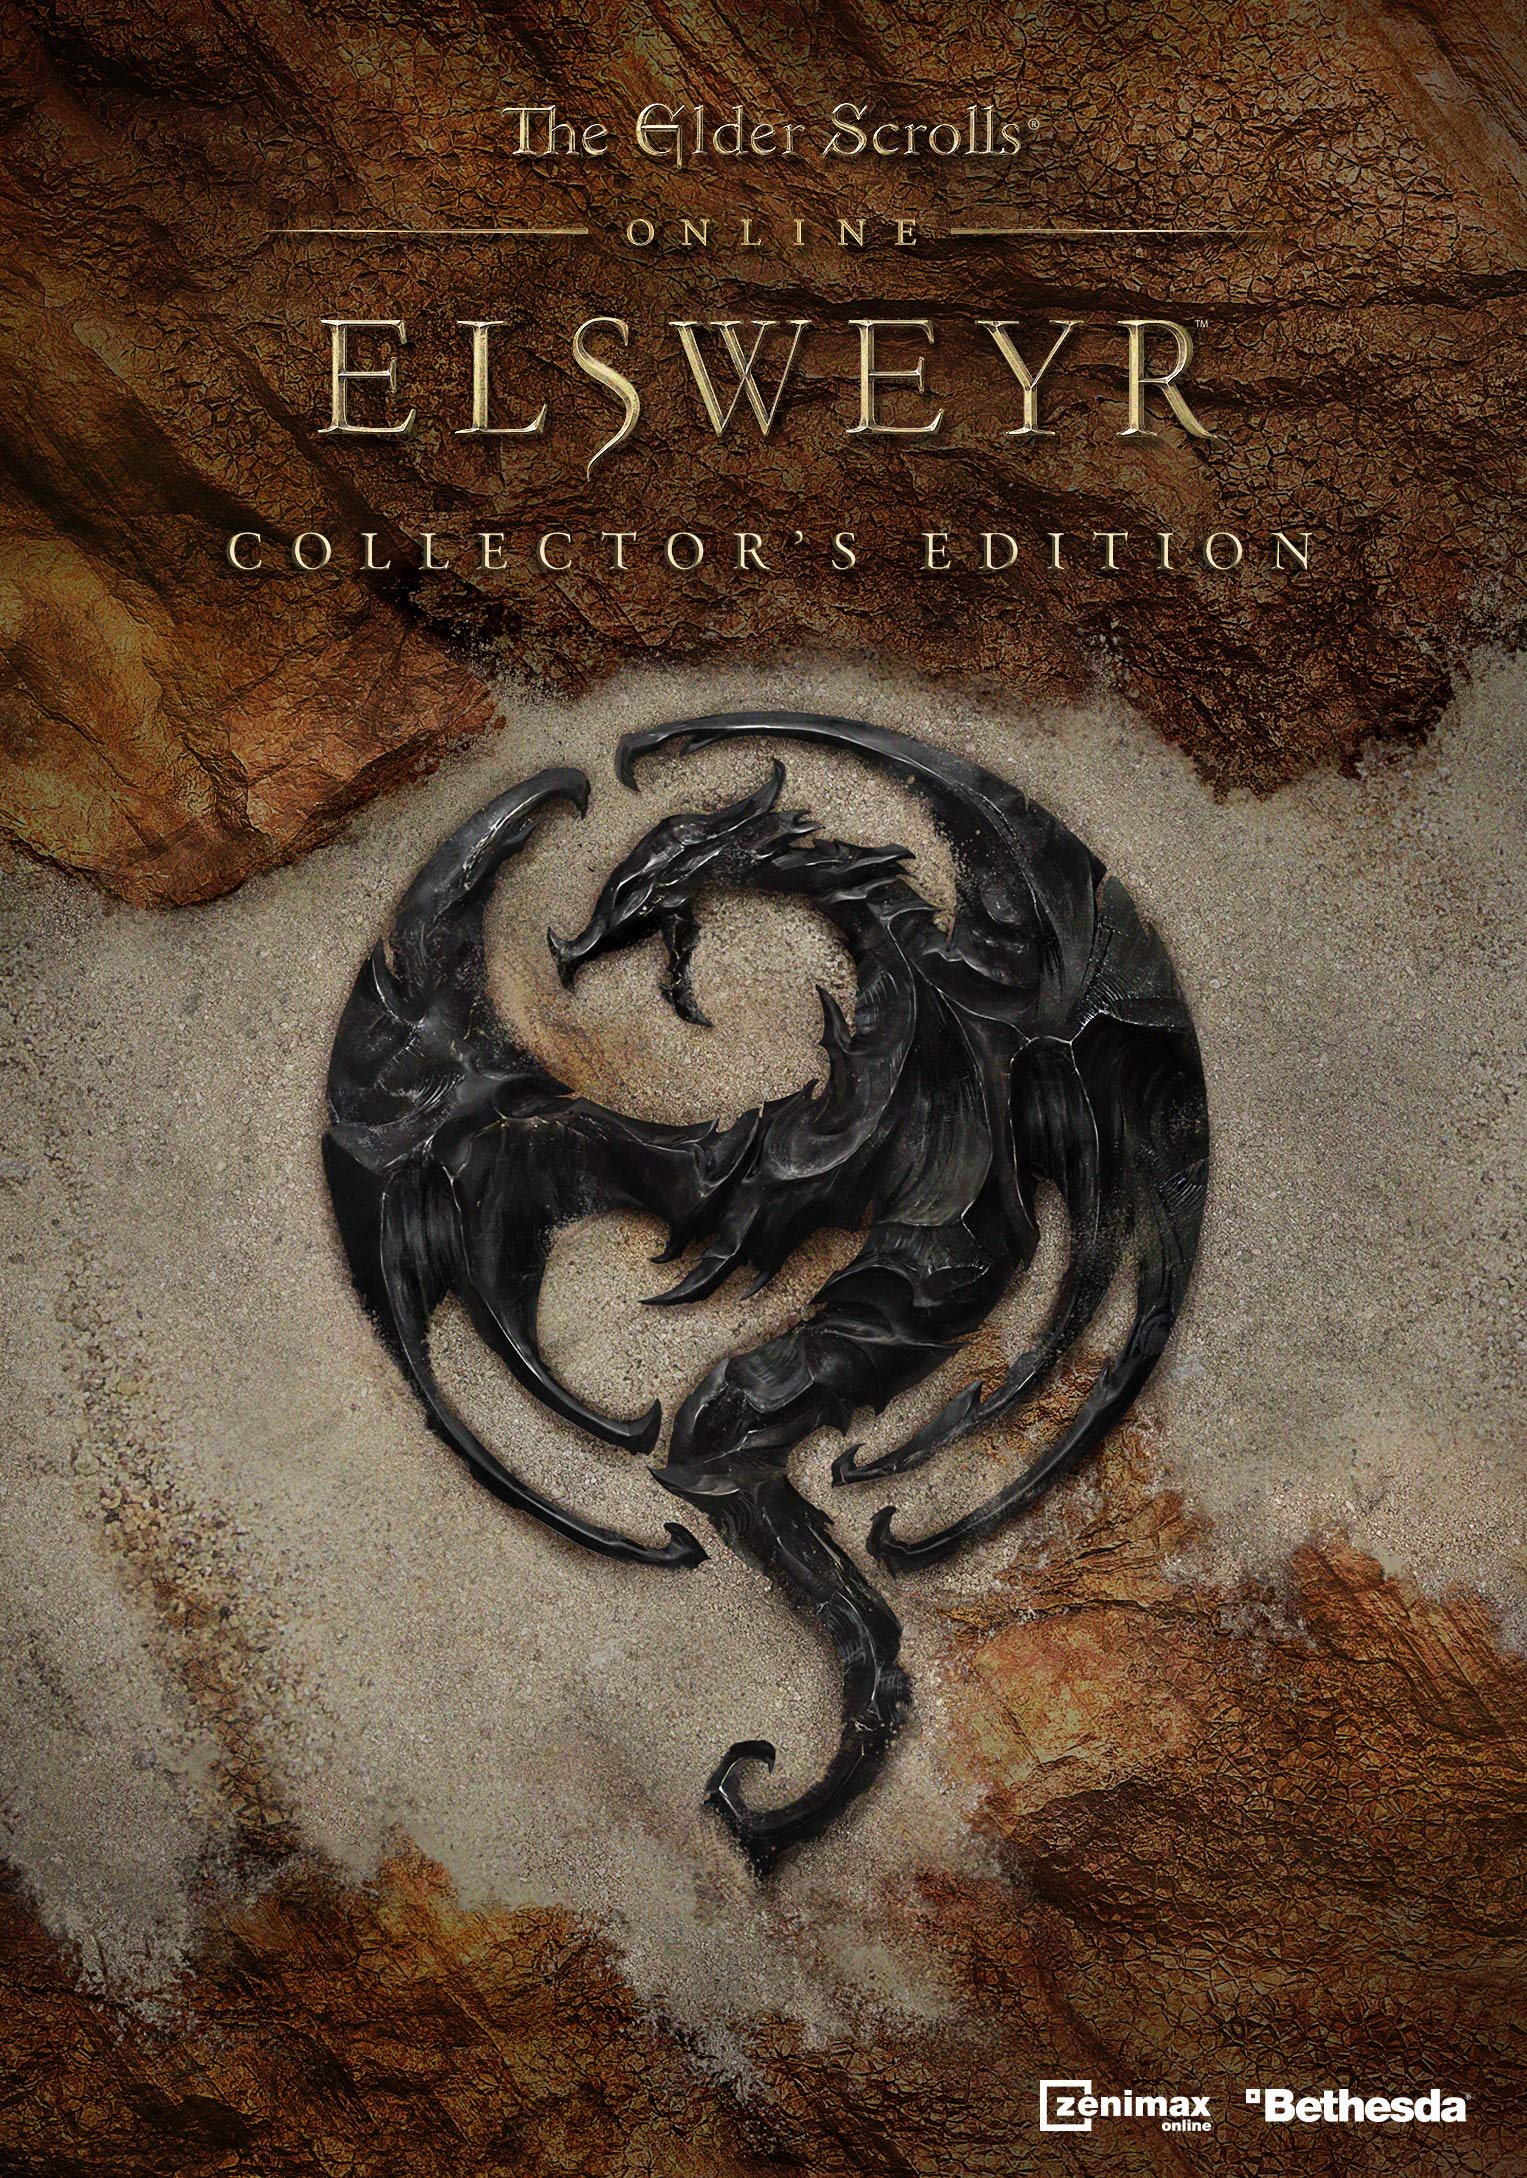 The Elder Scrolls Online: Elsweyr - Collector's Edition [Online Game Code] by Bethesda